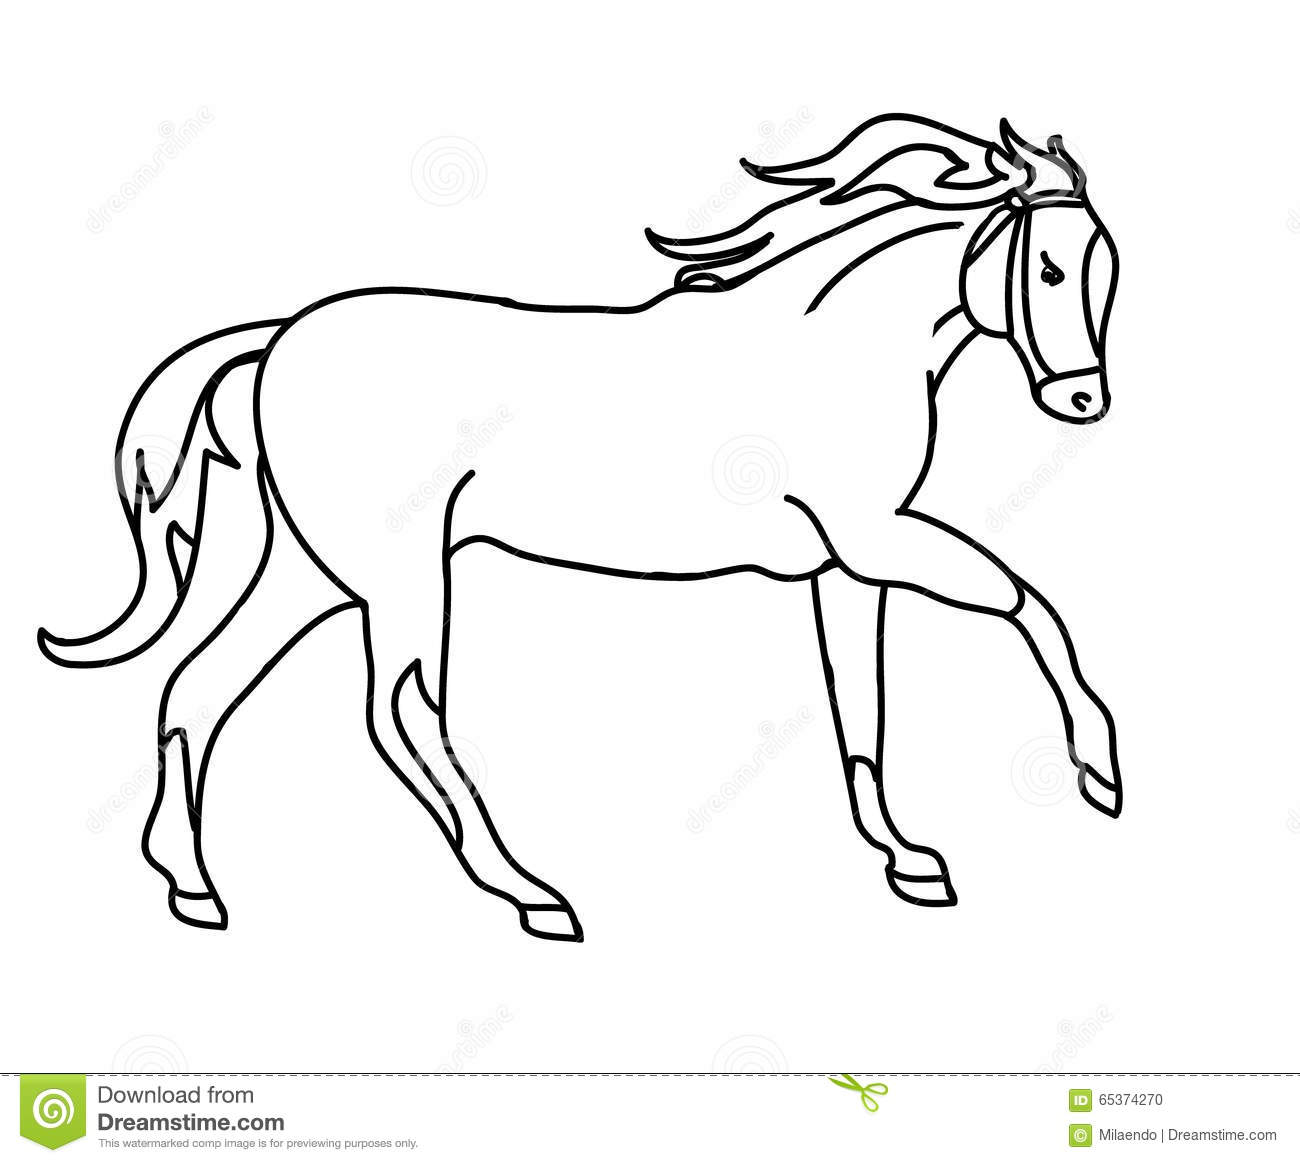 Drawing Lines With Core Graphics : The gallery for gt easy horse drawings running